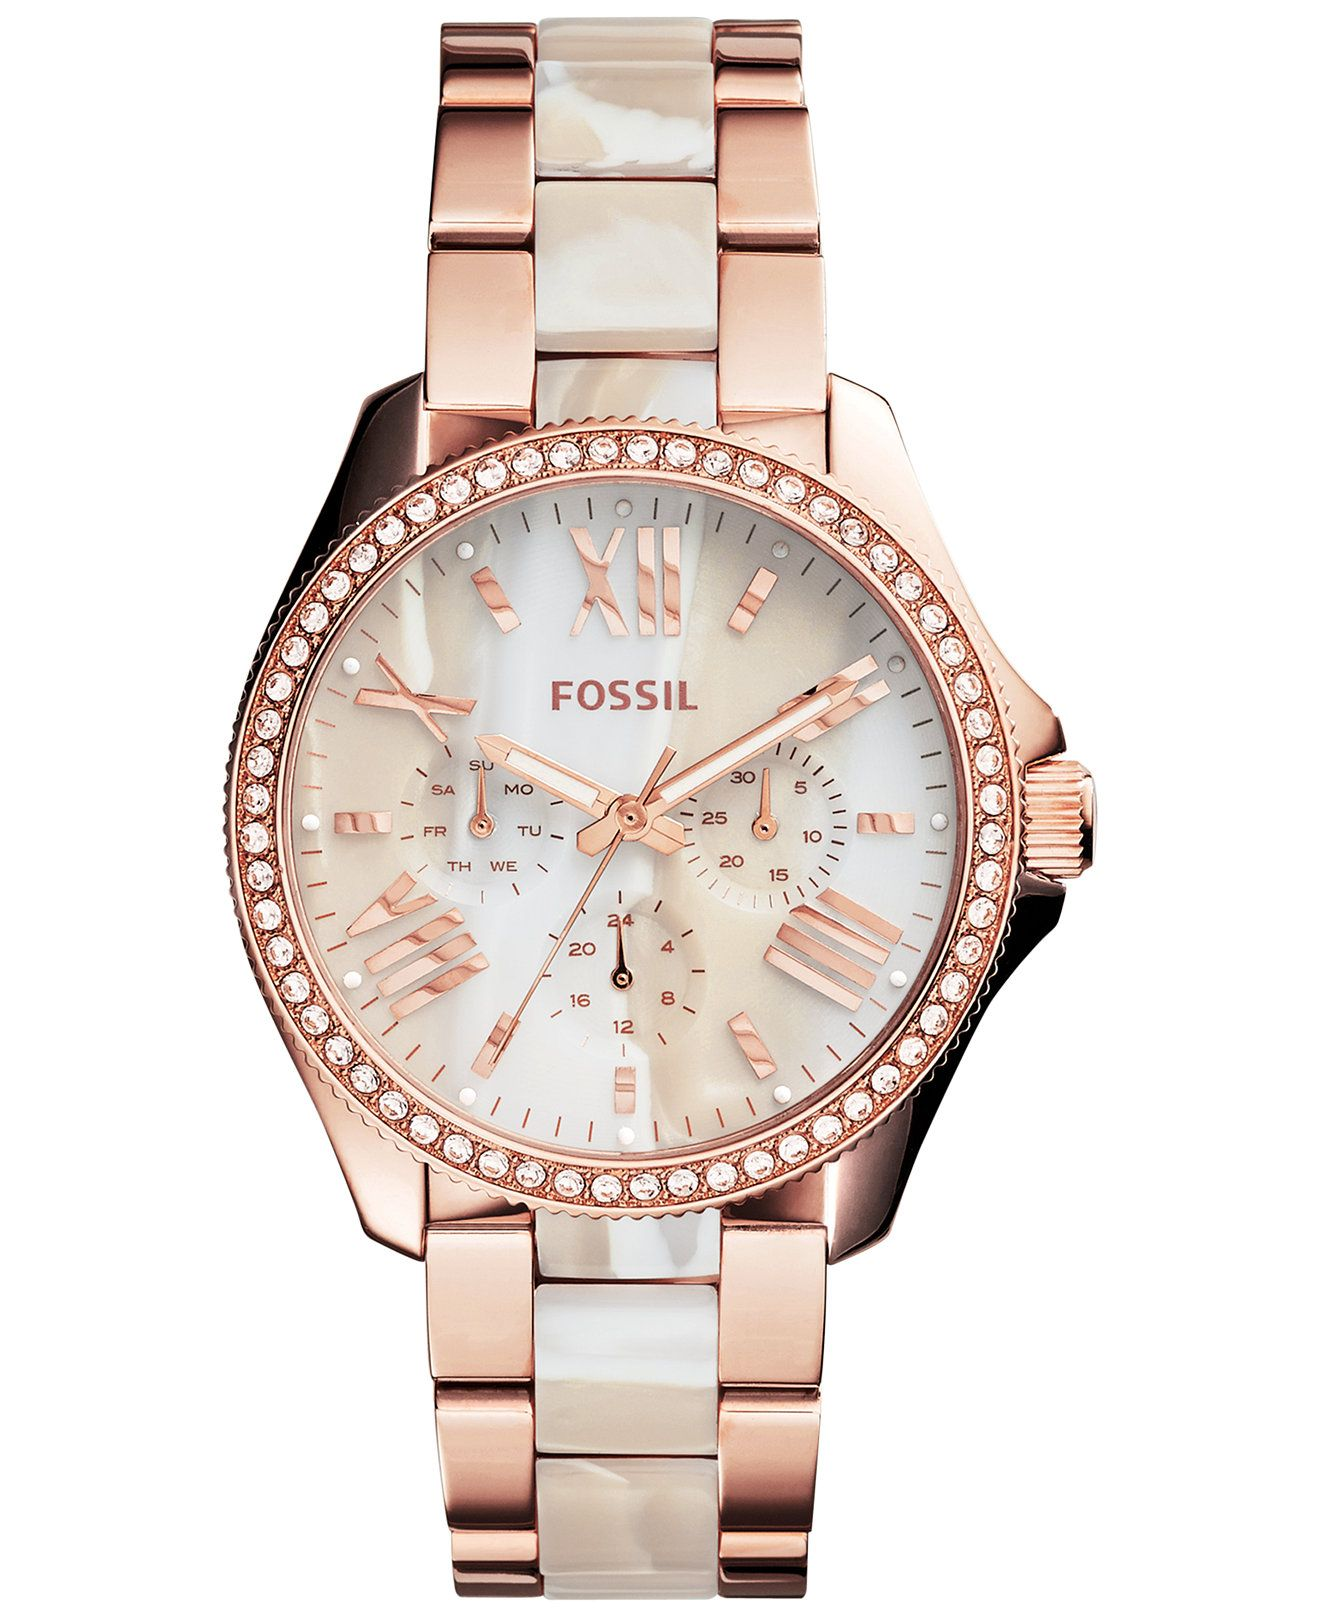 25d0425b4c08 Fossil Women s Chronograph Cecile Shimmer Horn and Rose Gold-Tone Stainless  Steel Bracelet Watch 40mm AM4616 - Watches - Jewelry   Watches - Macy s